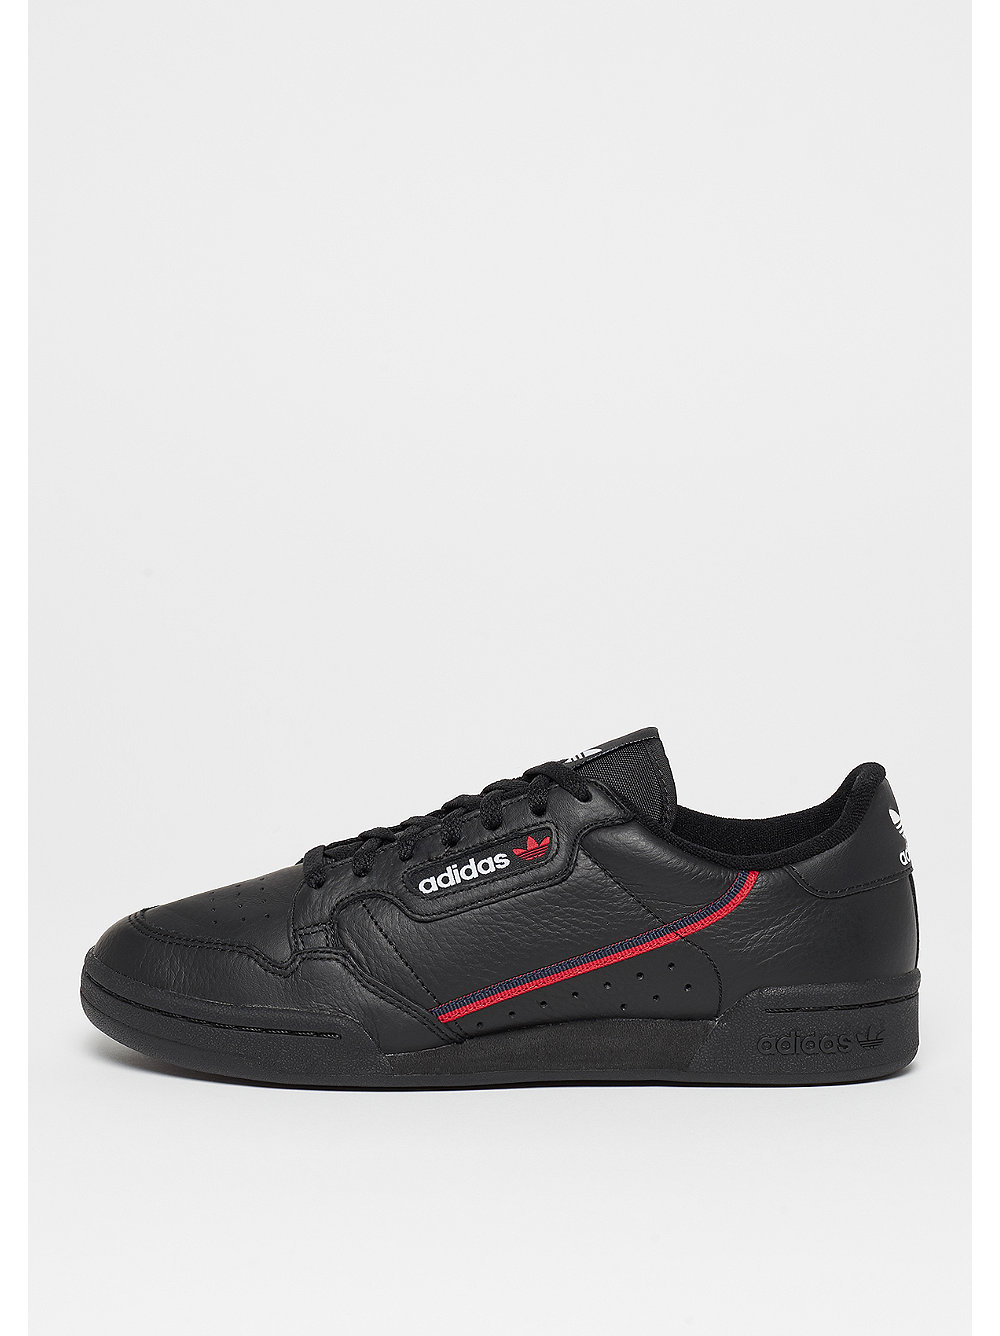 adidas Continental 80s core black/scarlet/colle...